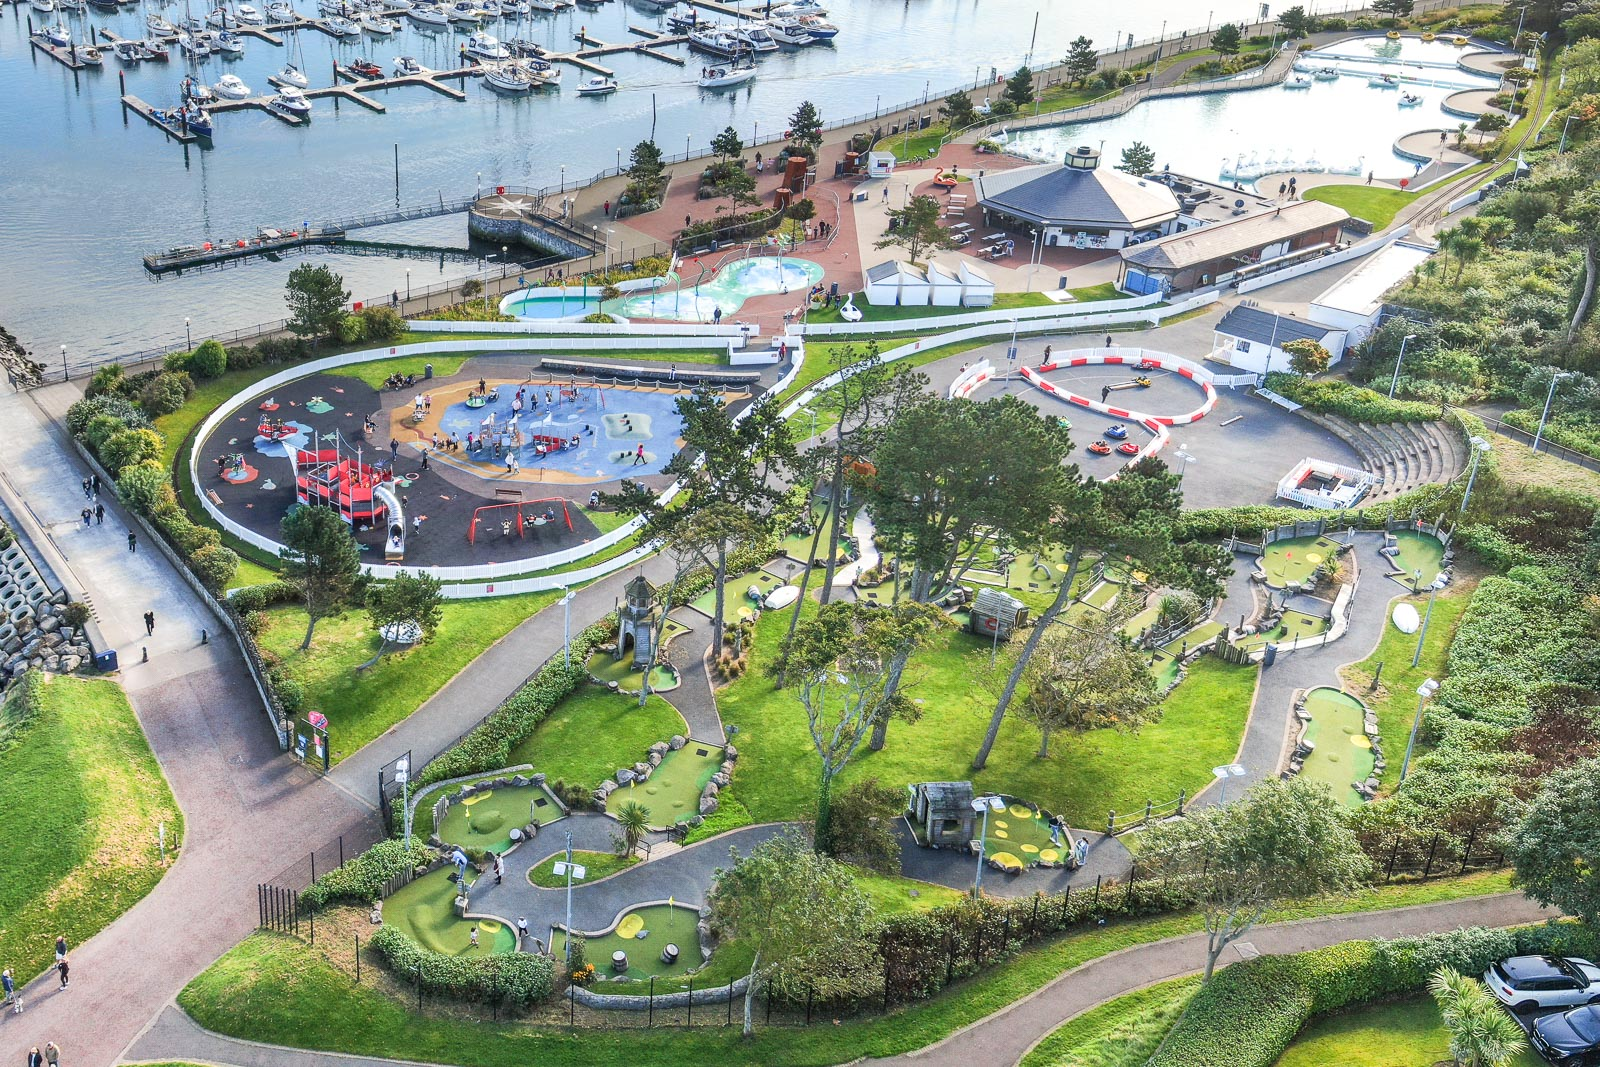 Aerial drone photography and video production services Dublin and Ireland portfolio - Pickie Fun Park, Bangor, aerial photo 0149-2